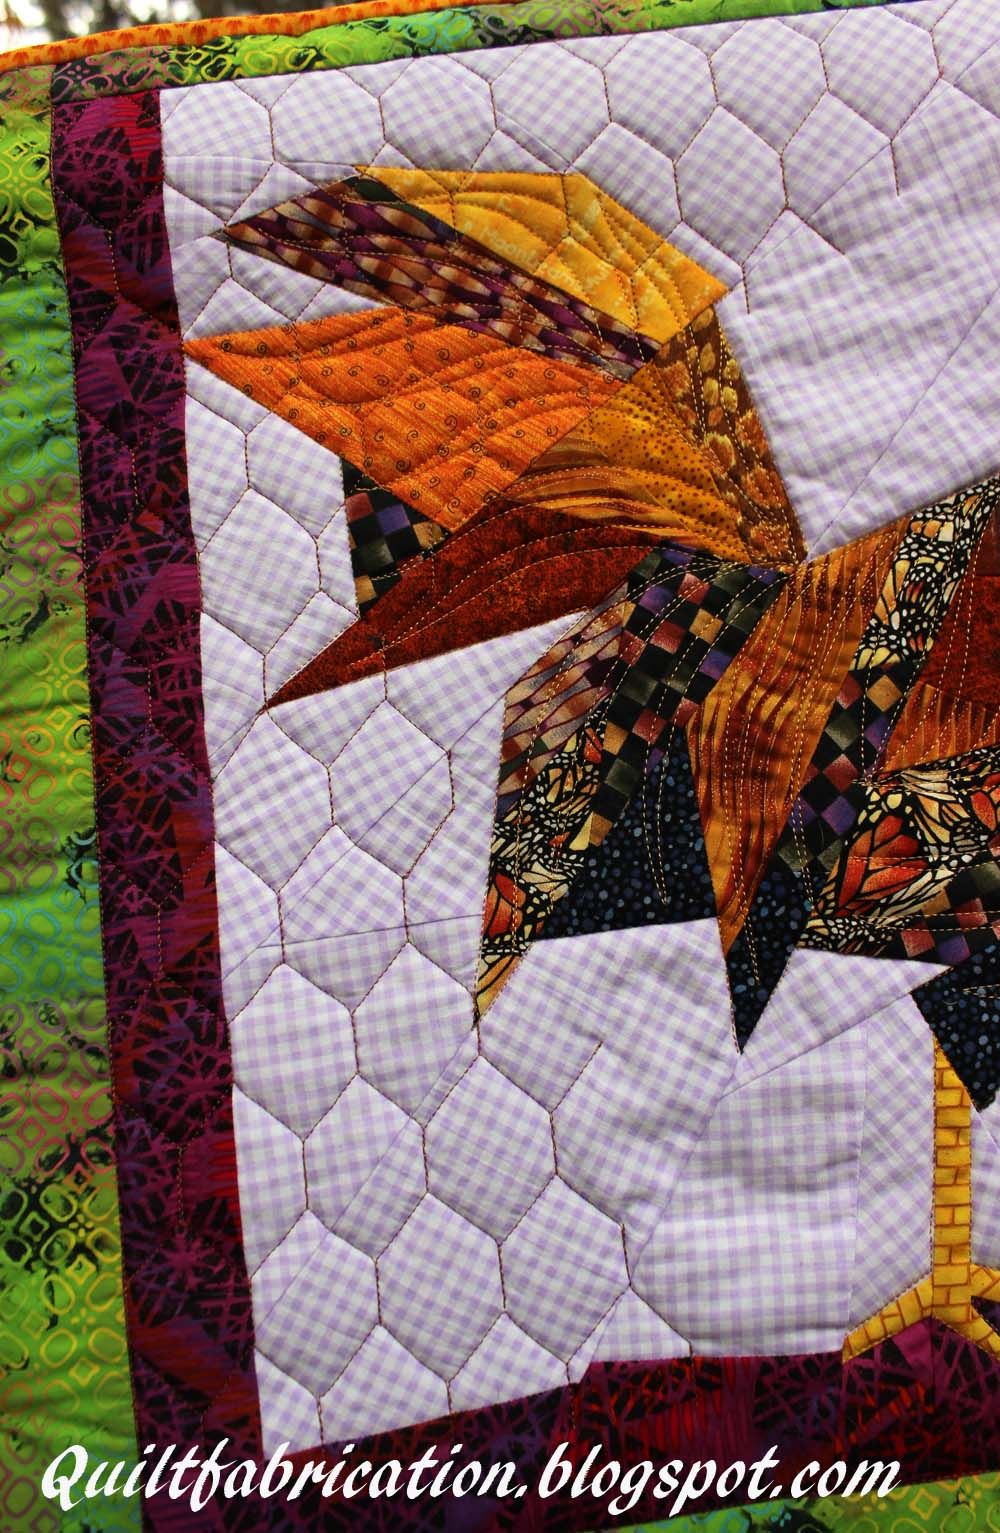 Tutorial for chicken wire quilting | Longarm quilting designs ... : longarm quilting blogs - Adamdwight.com